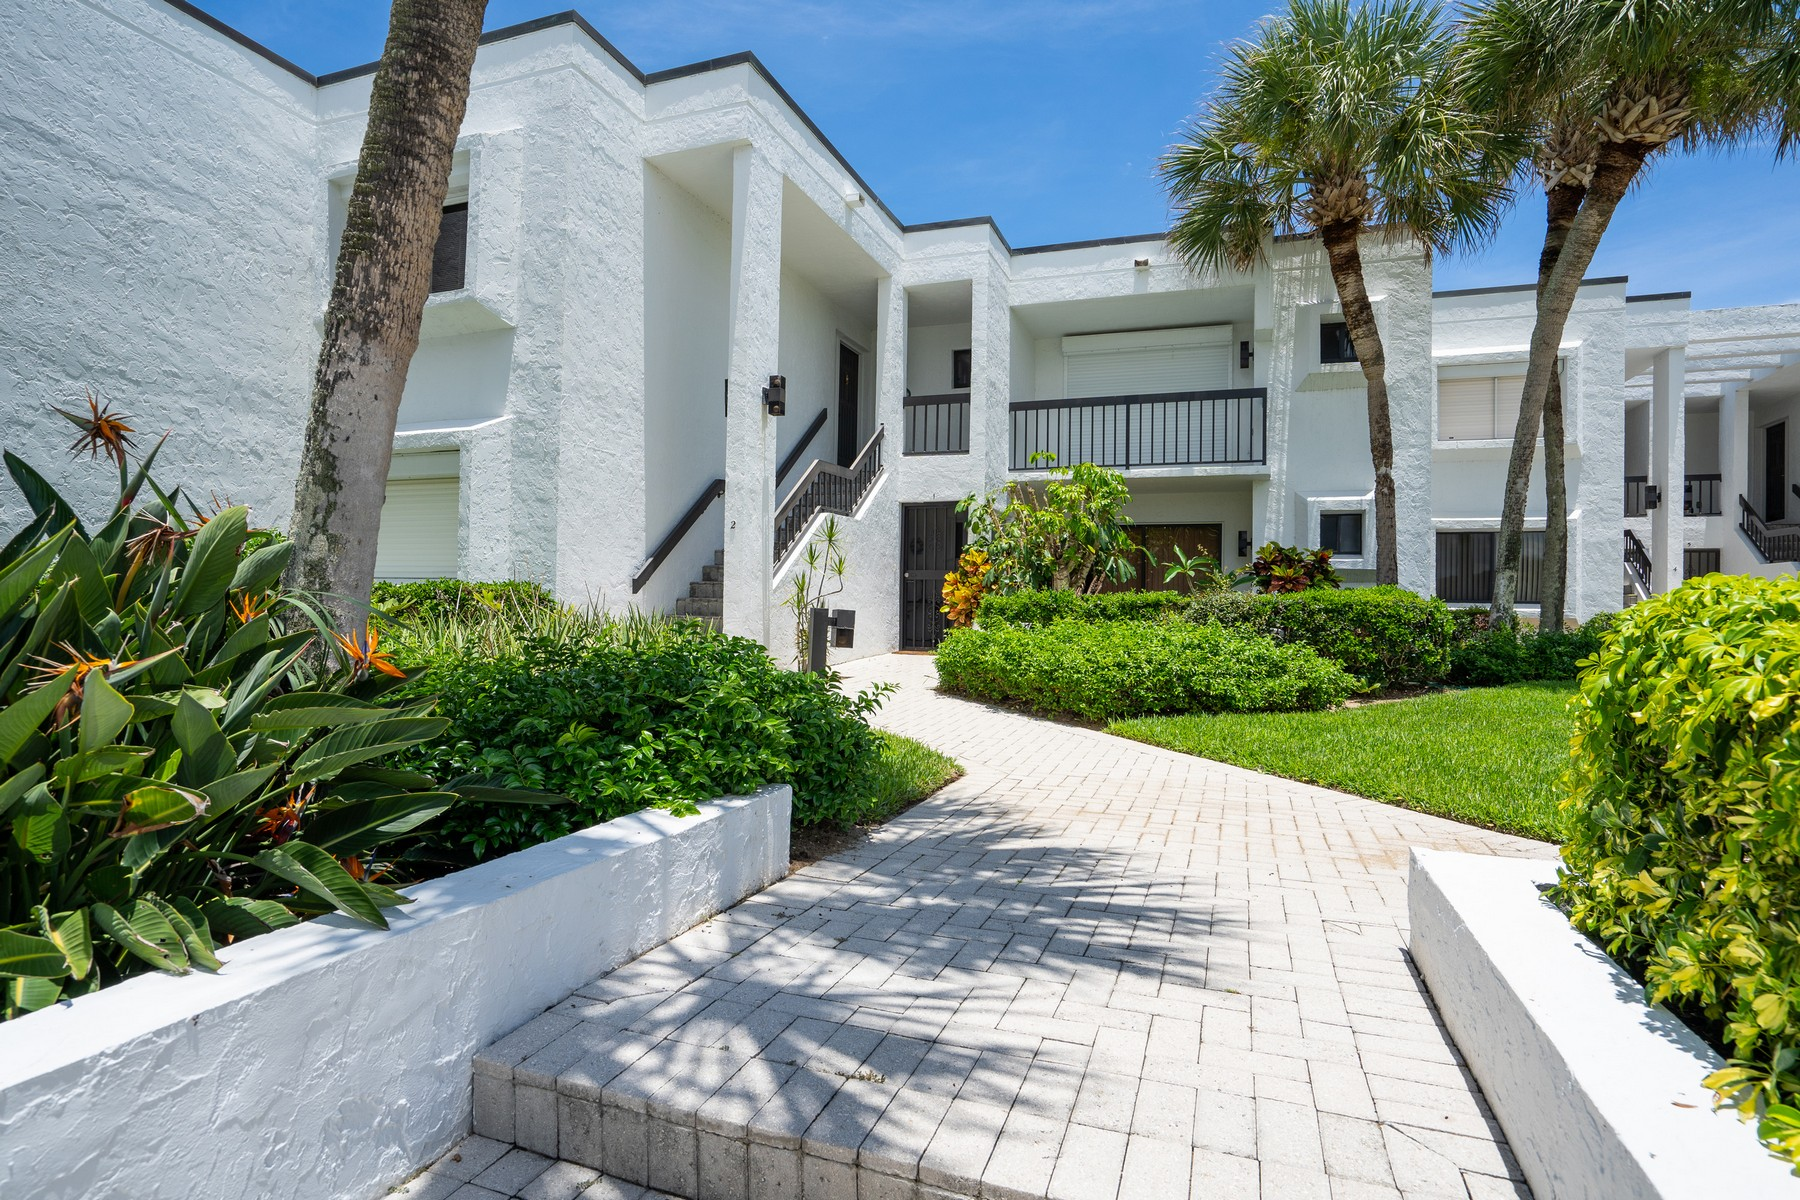 condominiums for Active at Oceanfront First Floor Condo 5790 Highway A1A #1A Indian River Shores, Florida 32963 United States